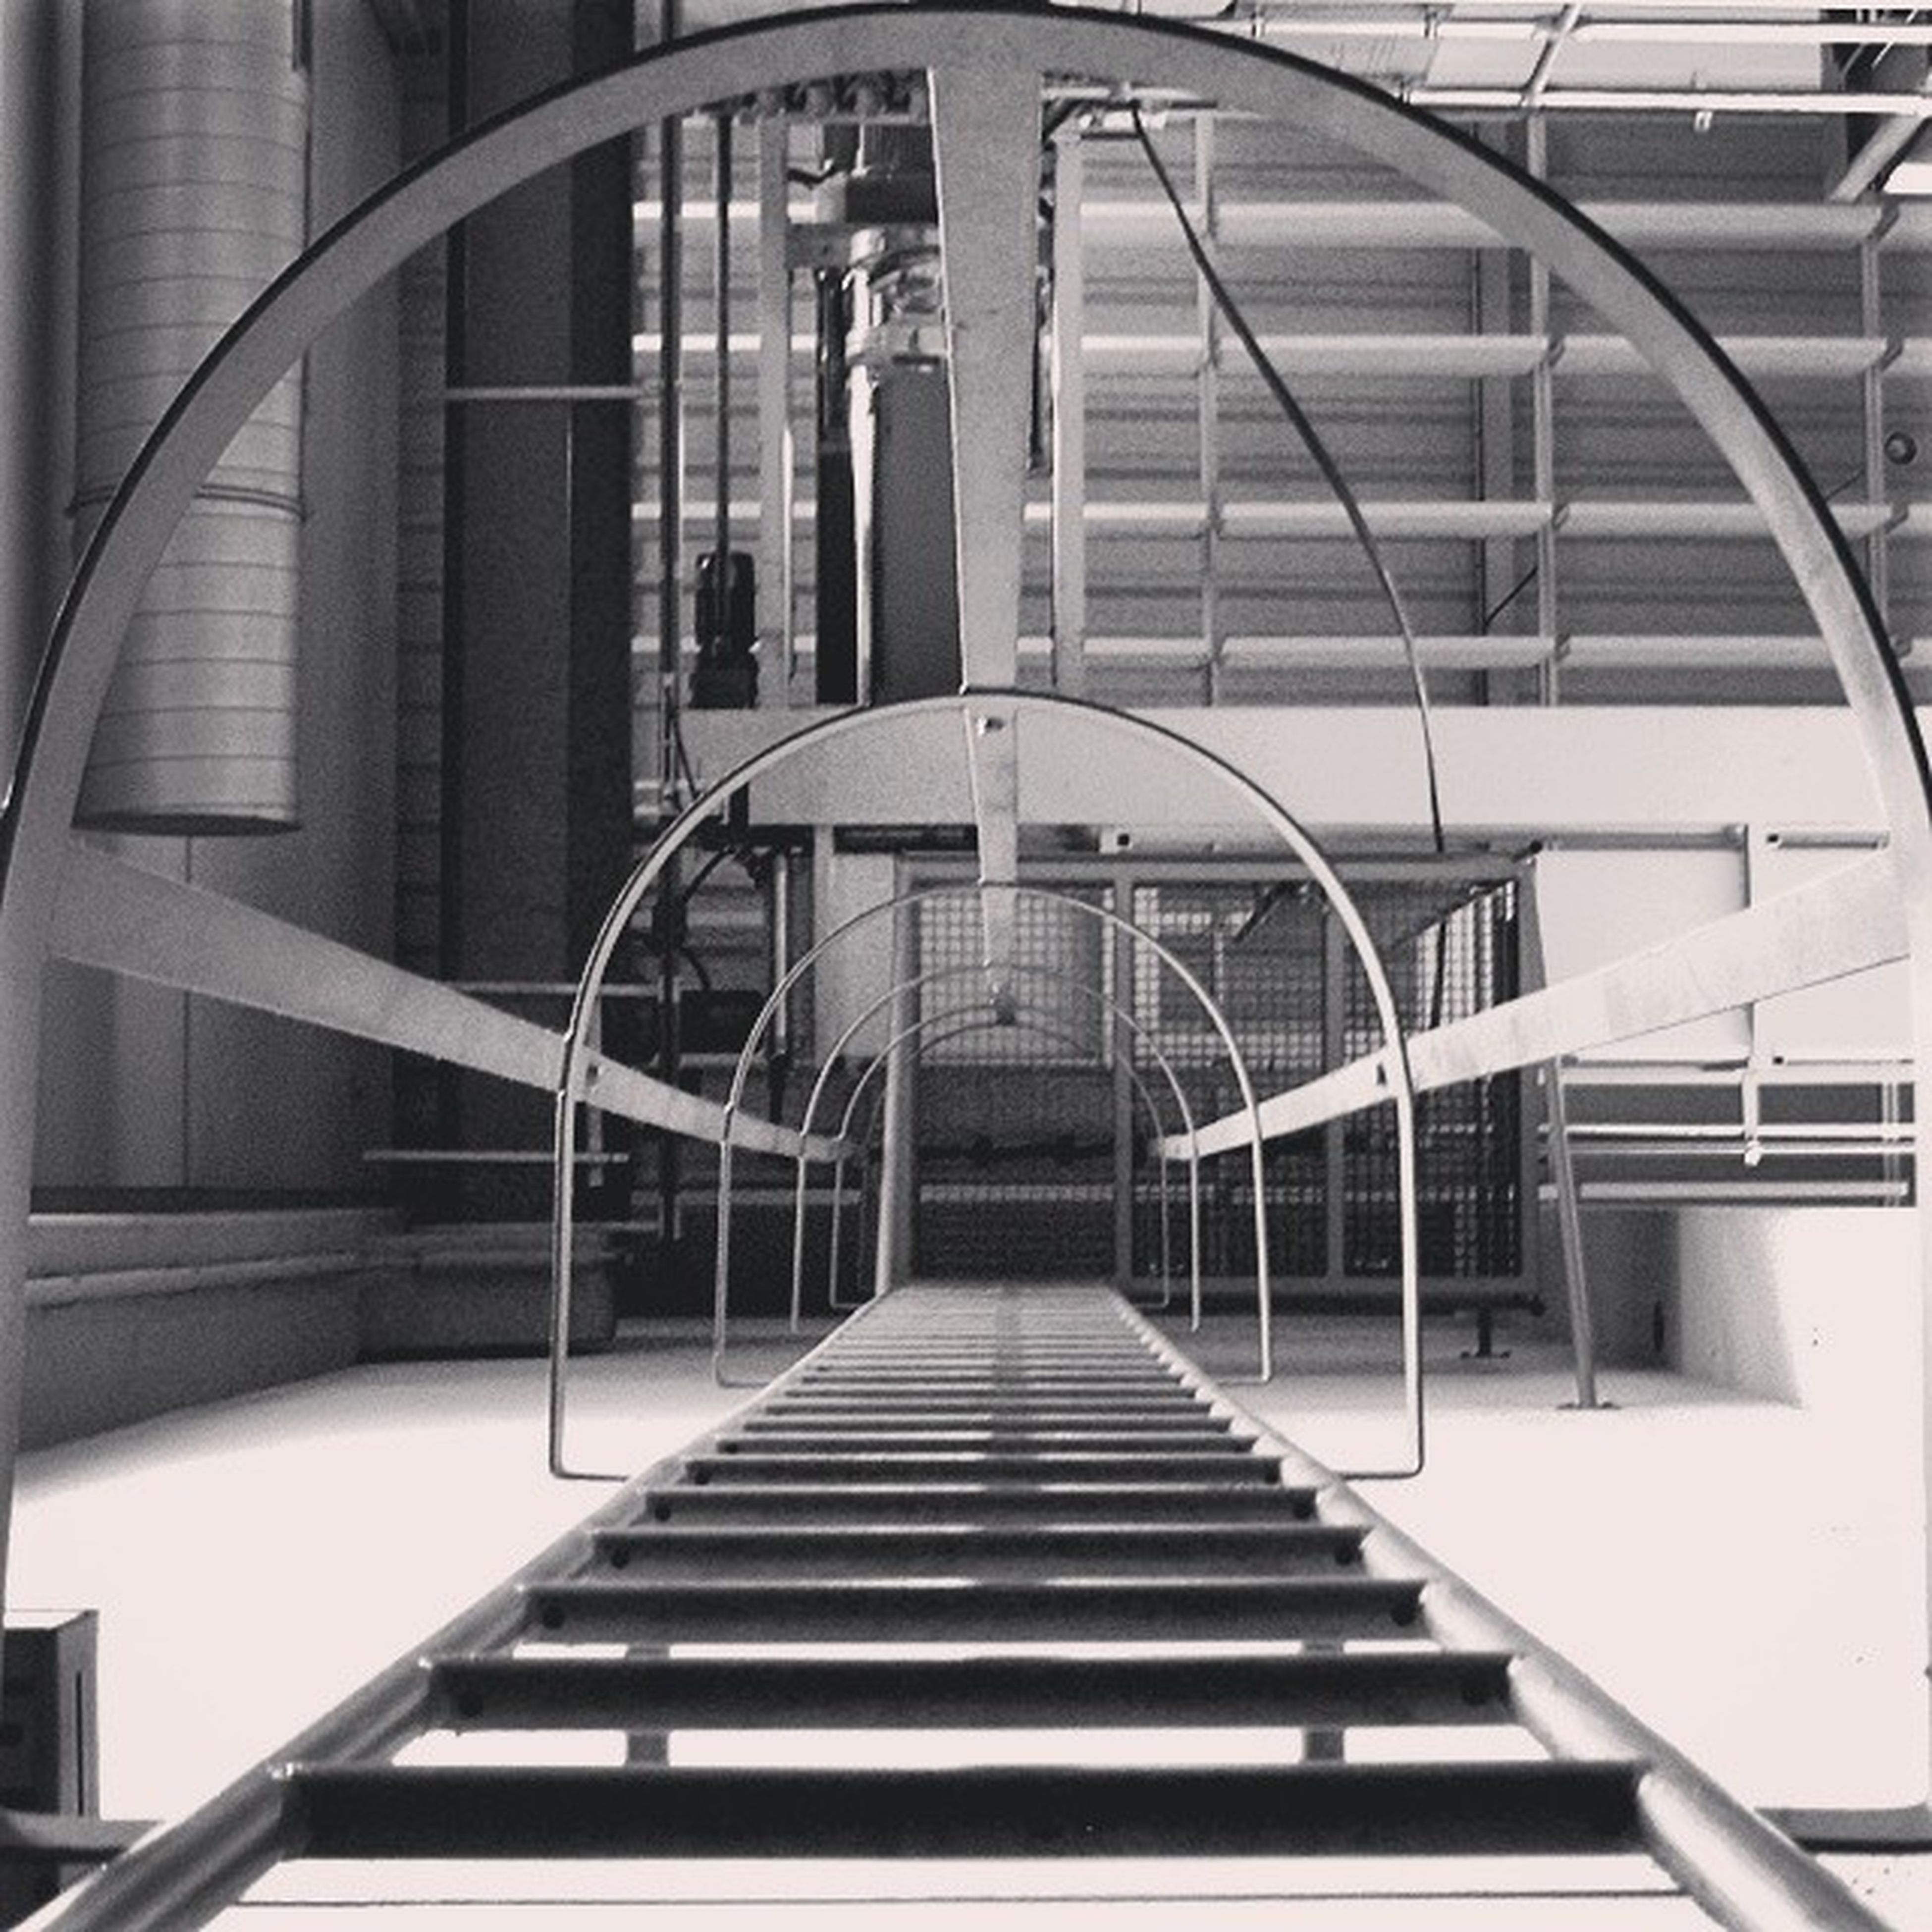 architecture, built structure, staircase, steps, railing, steps and staircases, building exterior, building, the way forward, low angle view, diminishing perspective, modern, stairs, day, city, no people, vanishing point, spiral staircase, outdoors, window